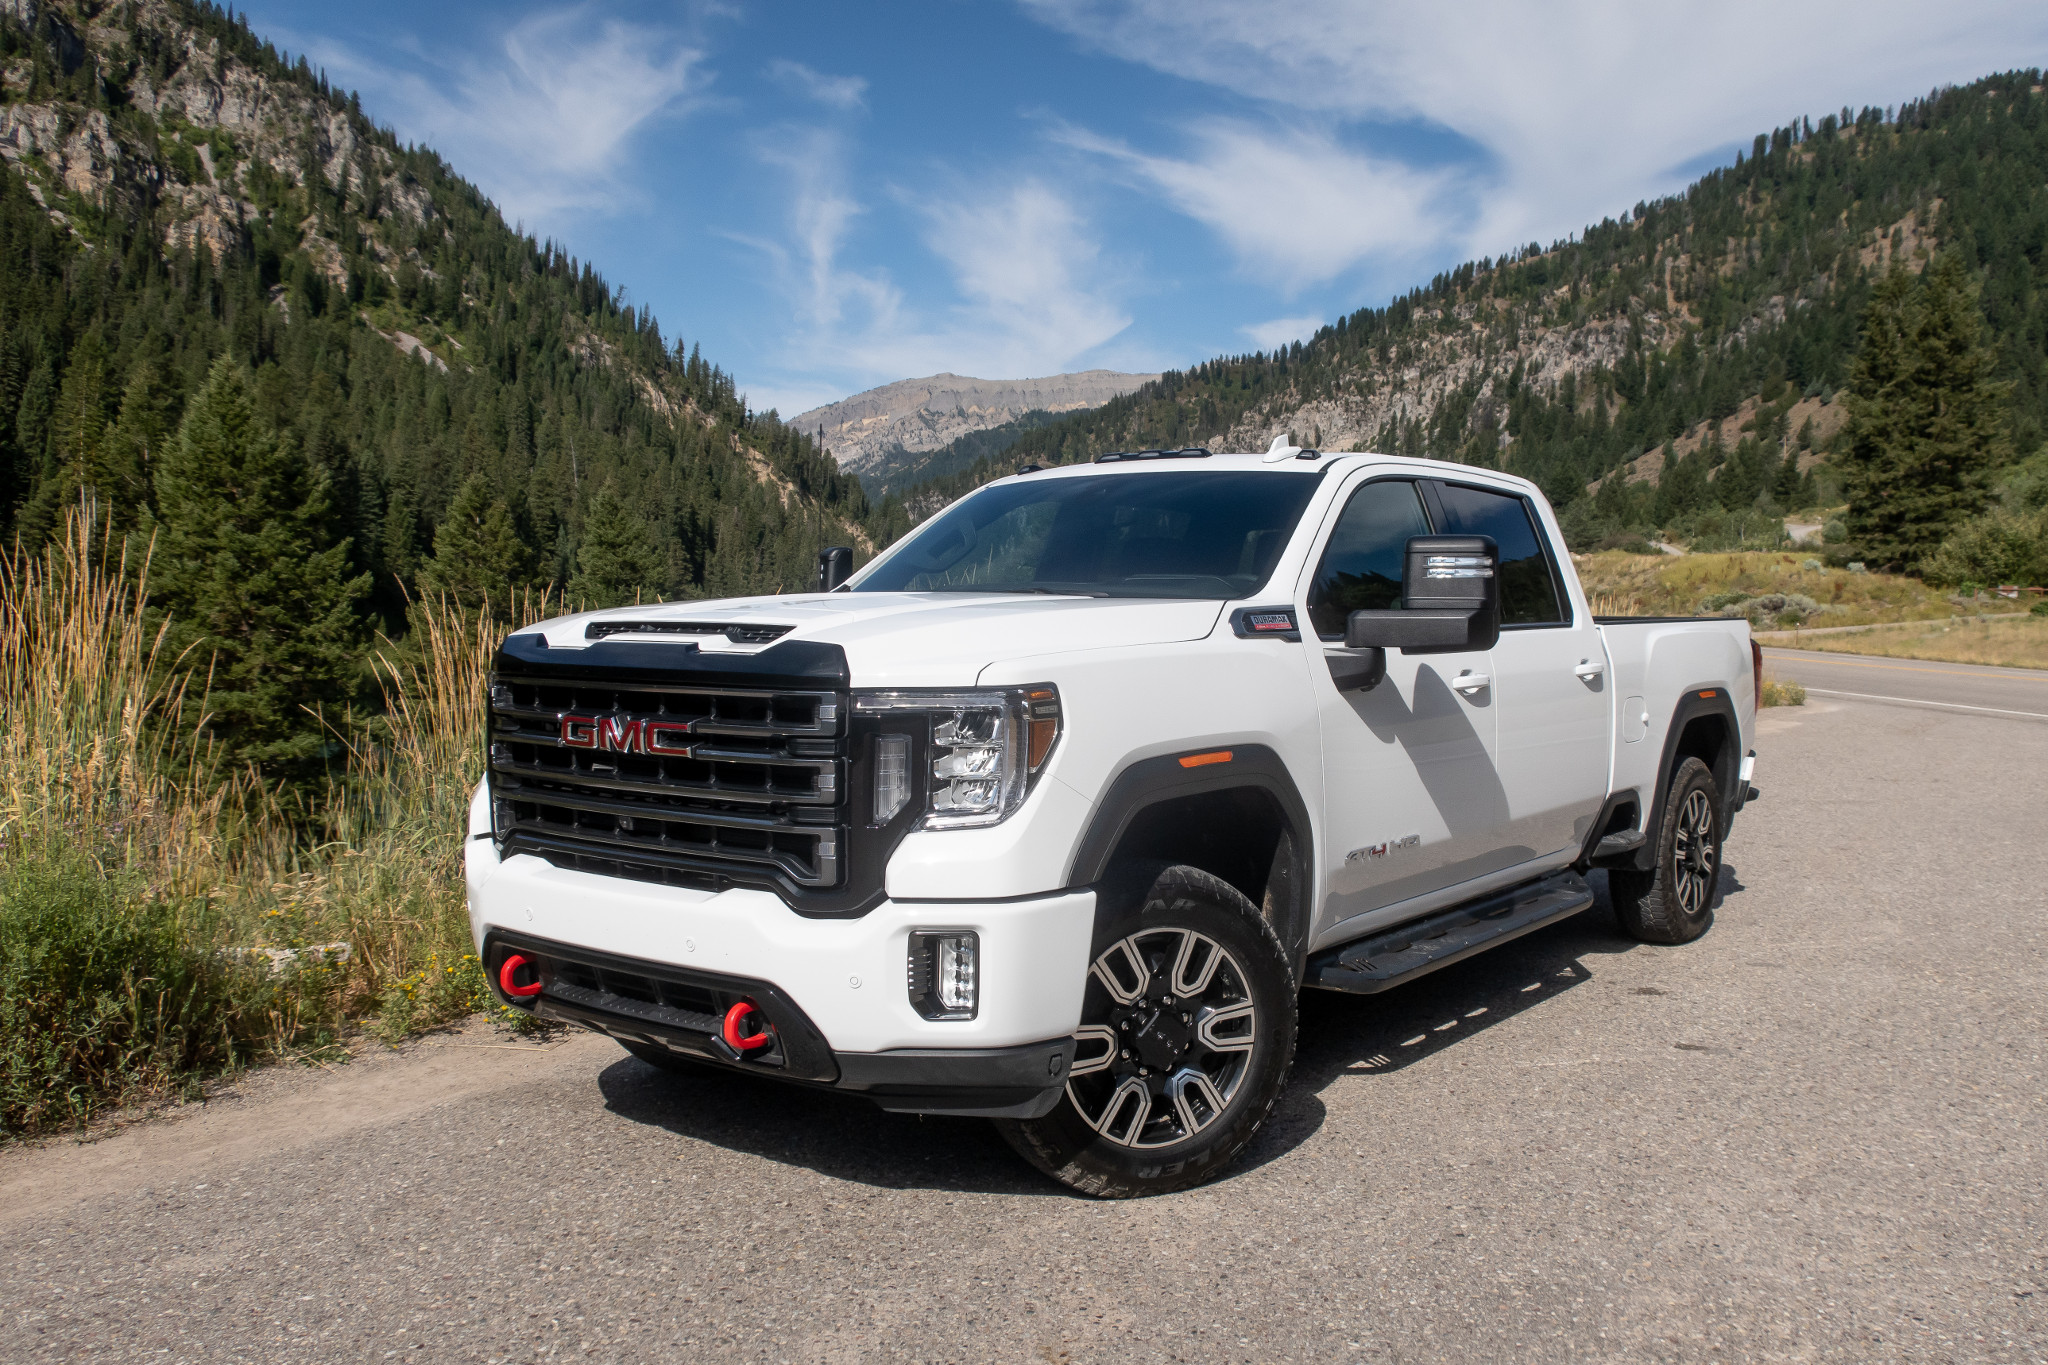 All the Pickup Truck News: GMC Sierra 1500 Duramax Vs. Ram 1500 EcoDiesel, GMC Sierra 2500 AT4 and More